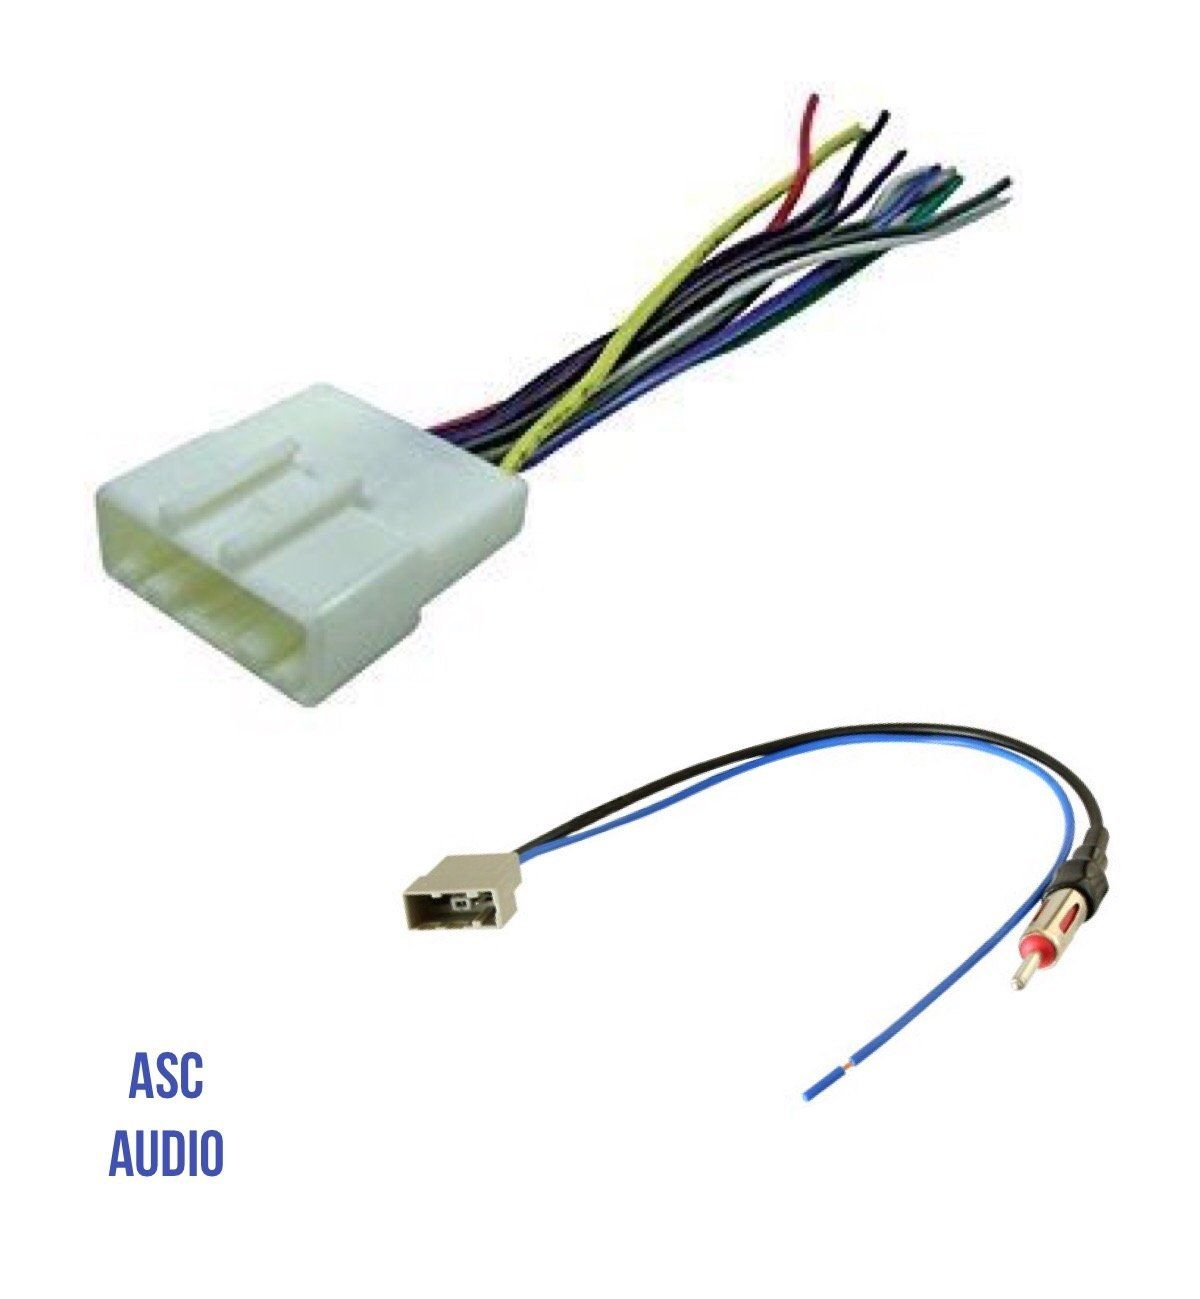 asc audio car stereo radio wire harness and antenna adapter to aftermarket radio for some infiniti nissan subaru etc listed below [ 1200 x 1299 Pixel ]